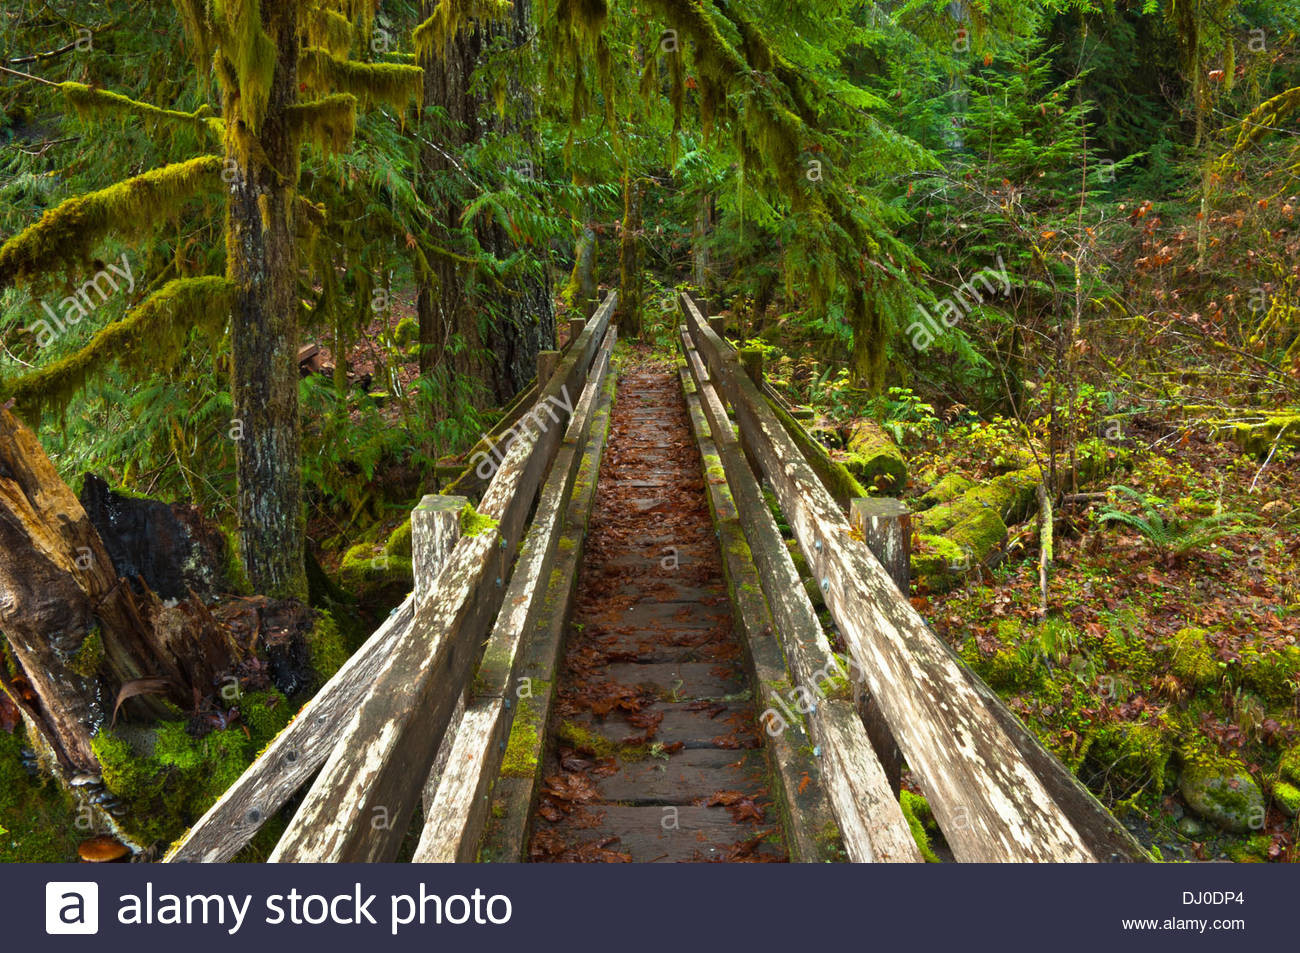 Best ideas about Staircase Olympic National Park . Save or Pin Shady Lane Trail Staircase Area Olympic National Park Now.